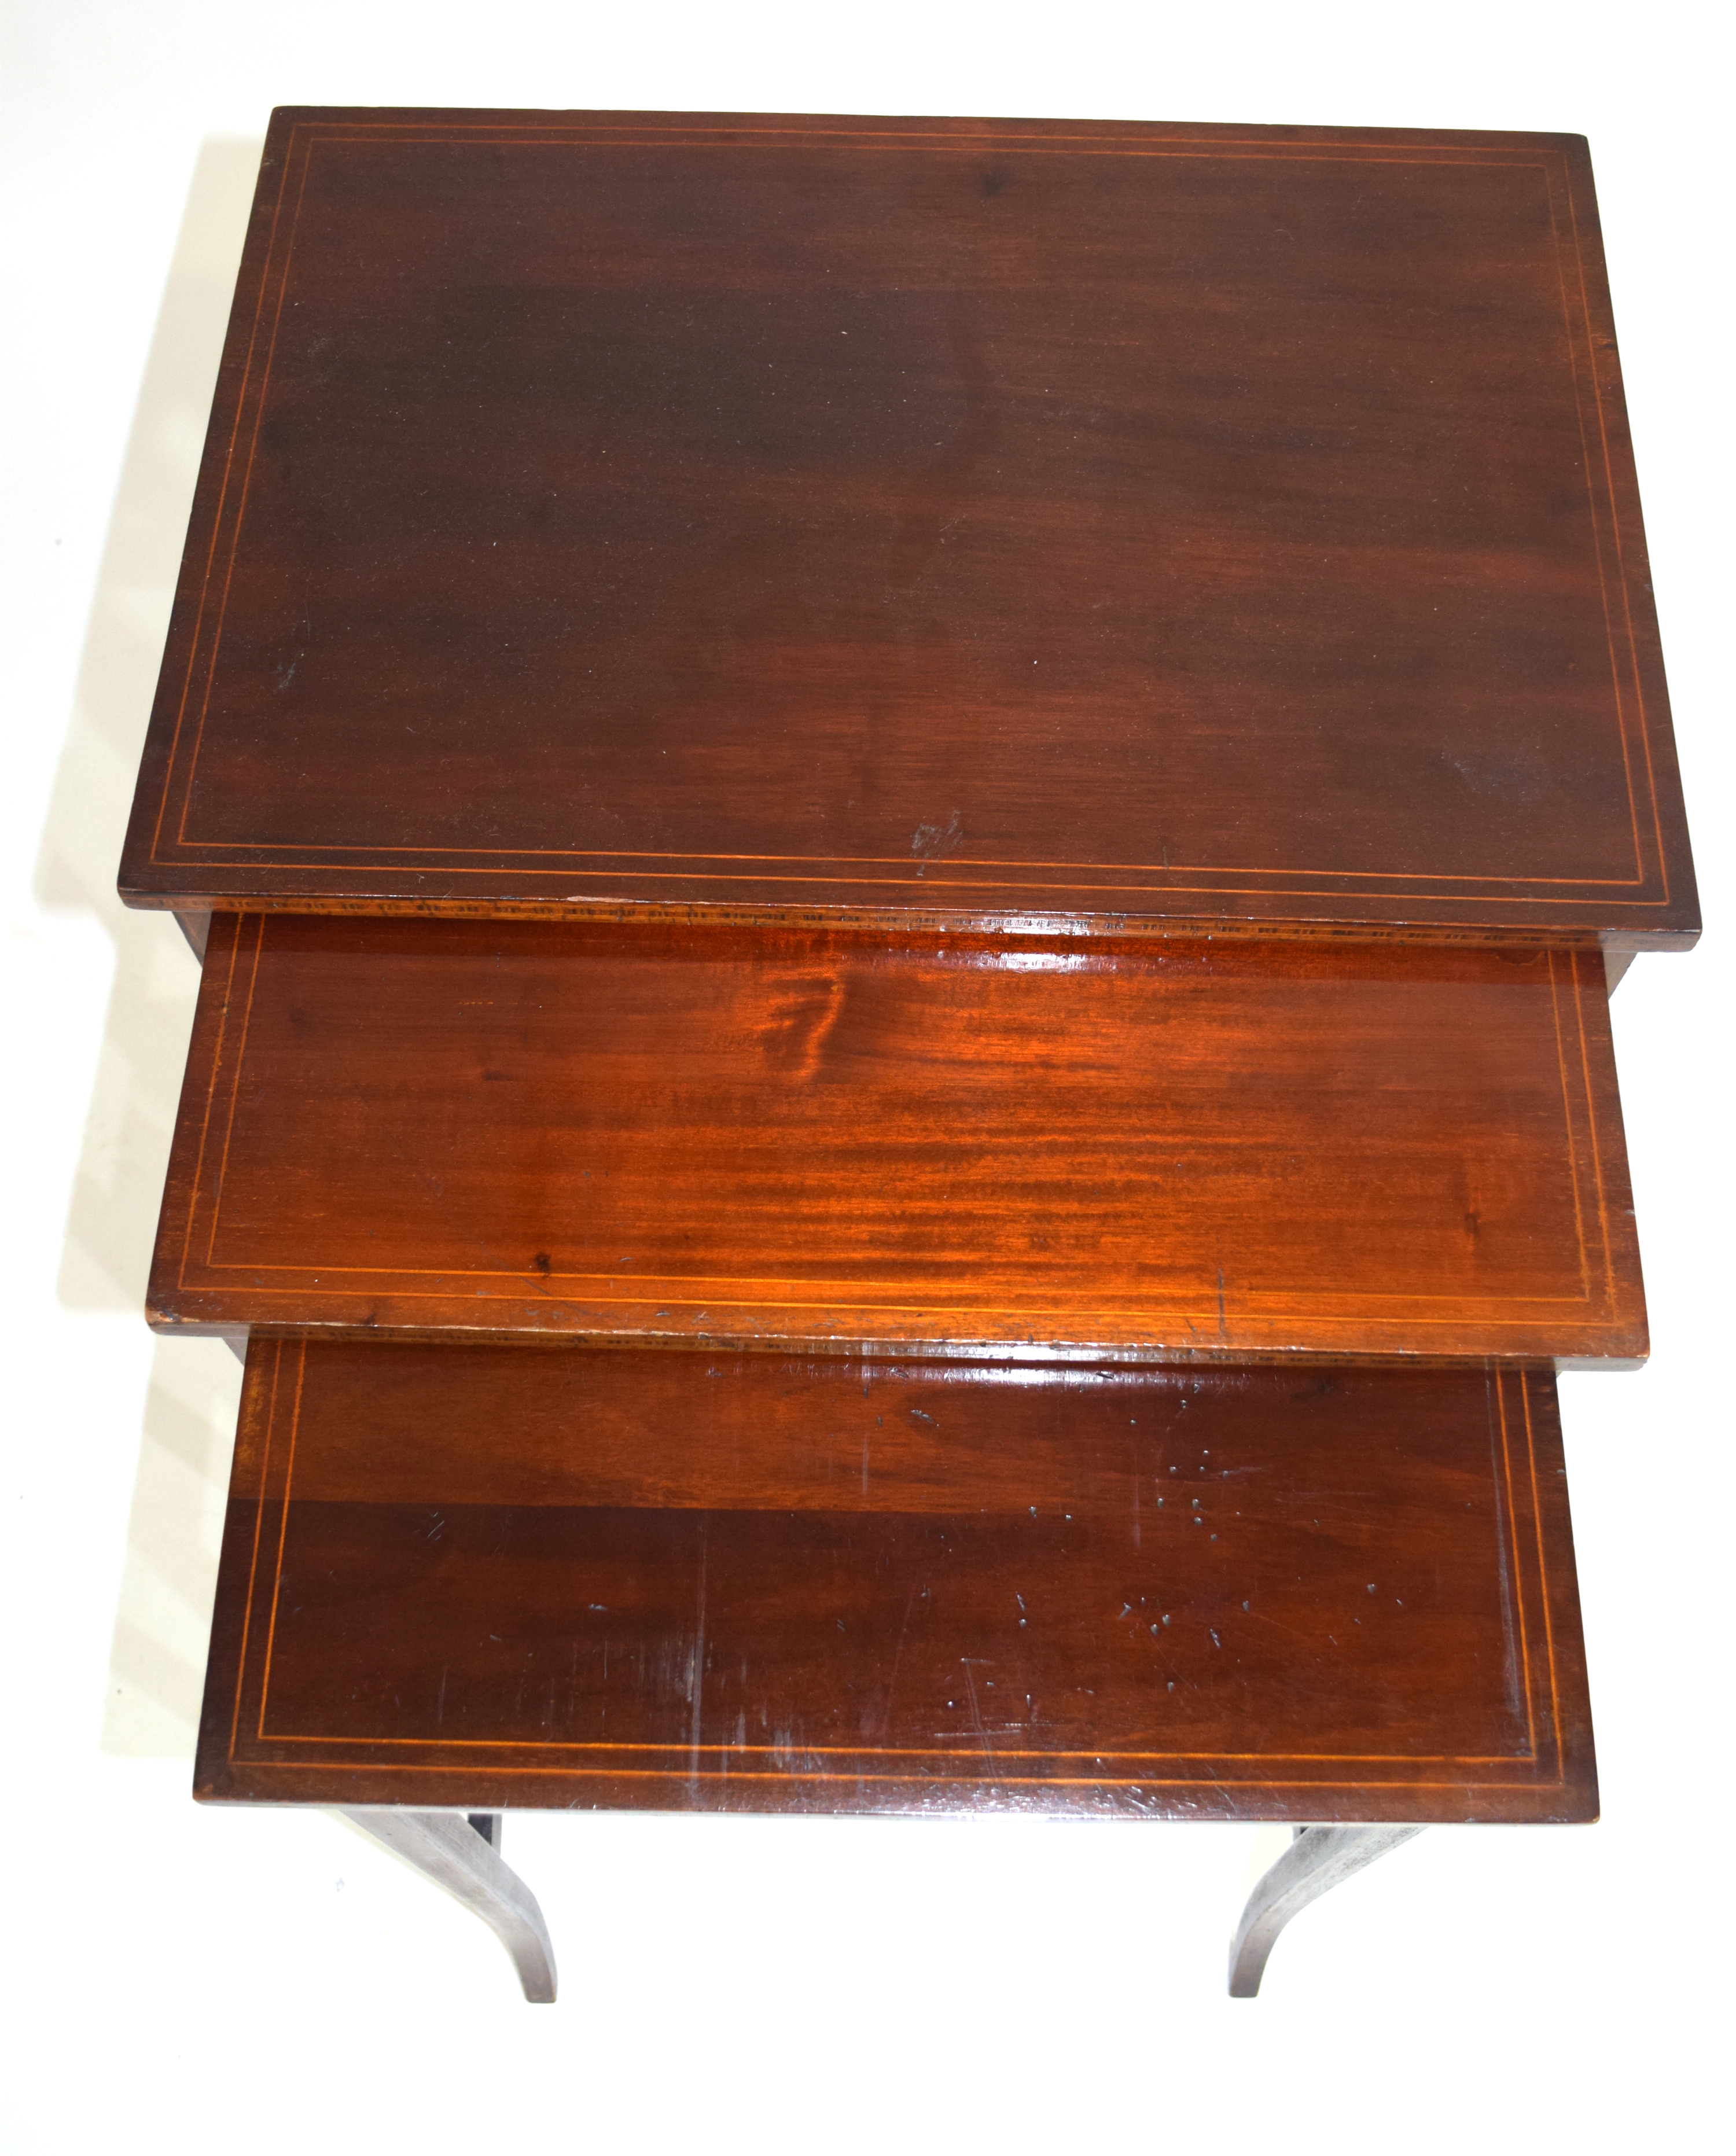 Nest of three Edwardian mahogany and inlaid occasional tables on slender legs, largest 49.5cm wide - Image 3 of 5